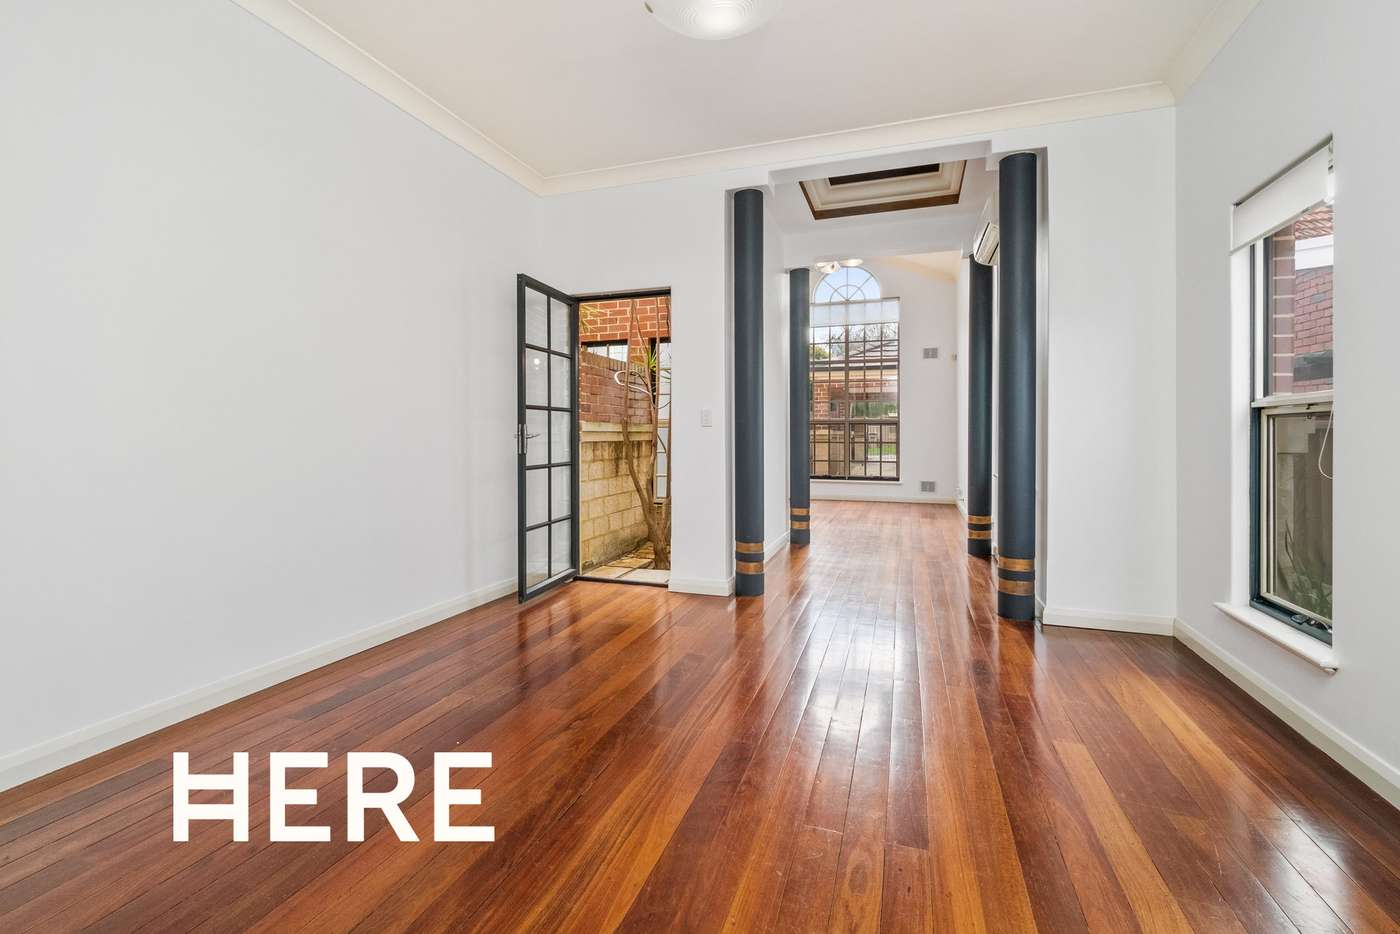 Sixth view of Homely townhouse listing, 41B Galwey Street, Leederville WA 6007